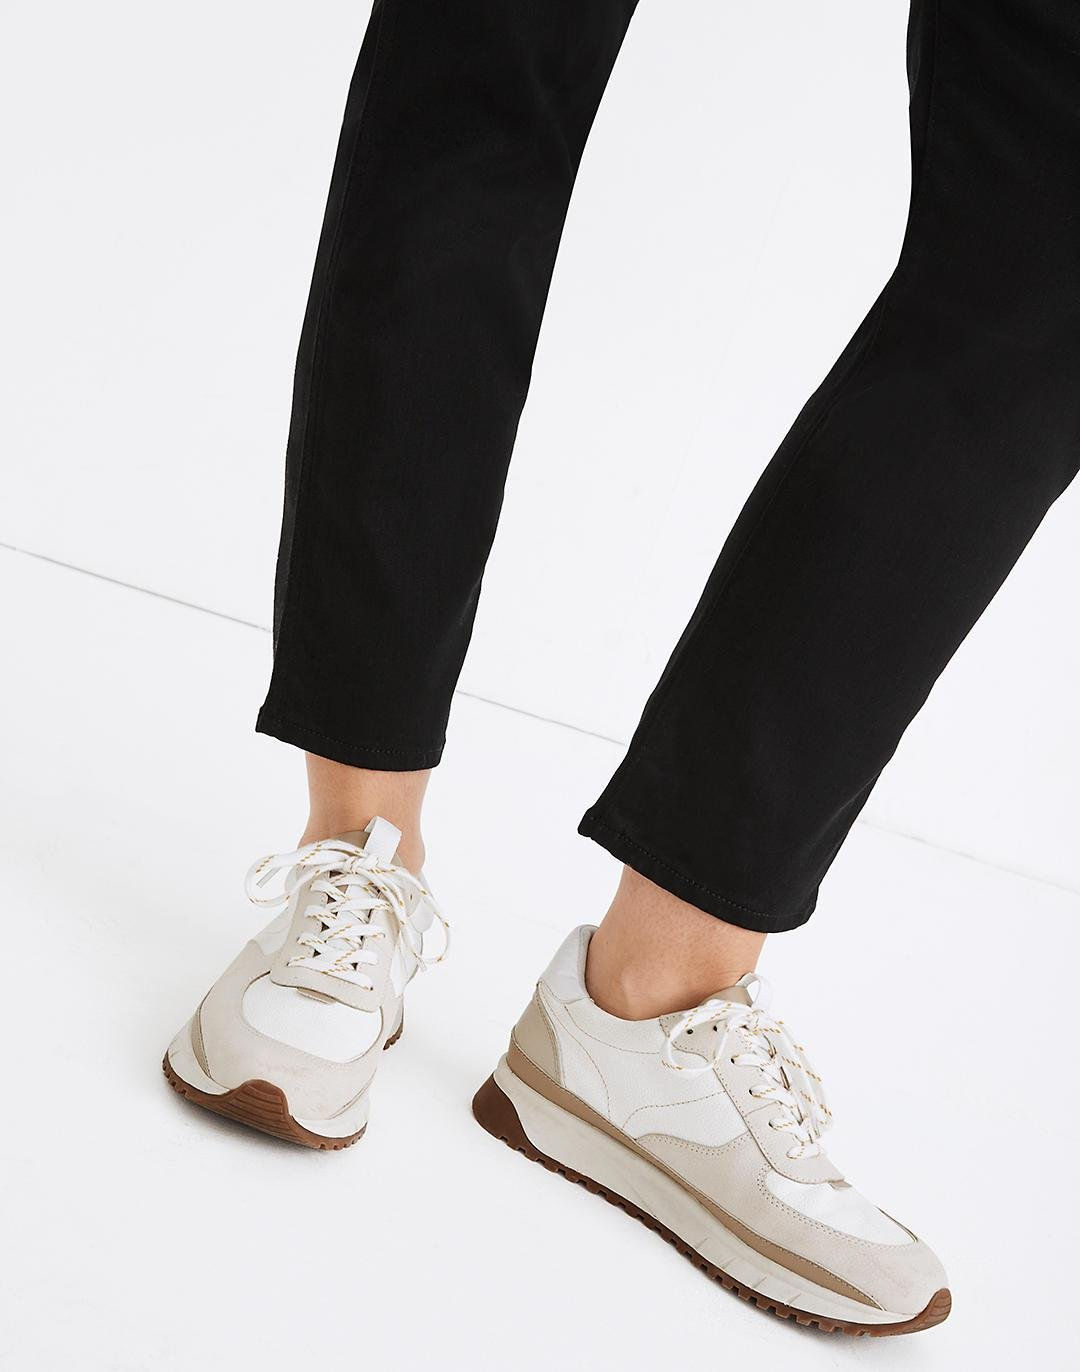 Kickoff Trainer Sneakers in Neutral Colorblock Leather 3